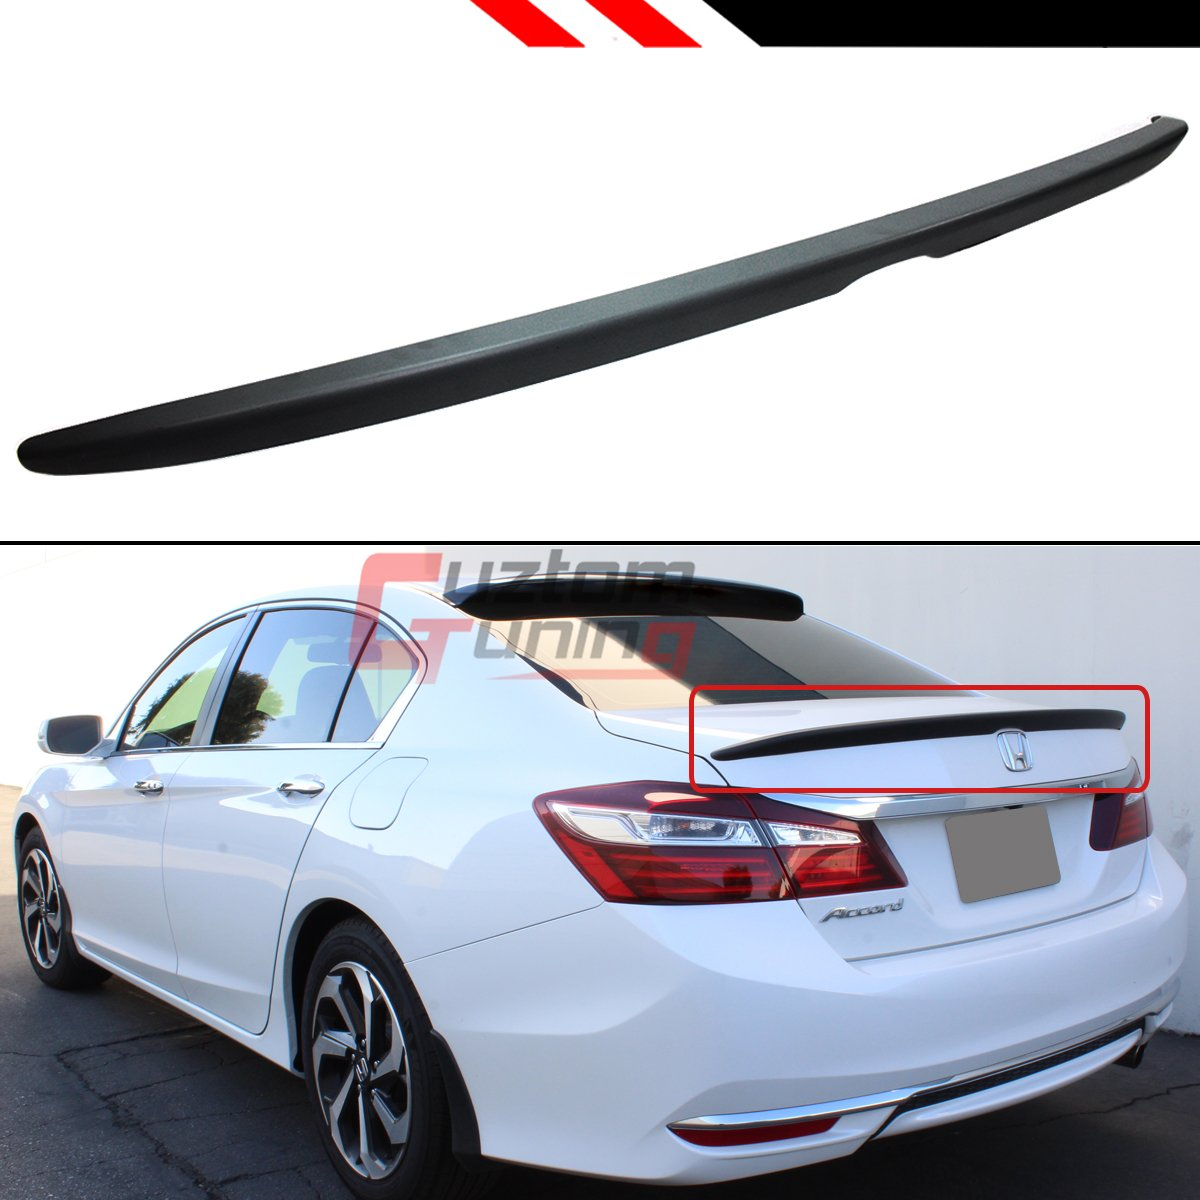 Cuztom Tuning Sport Style Flush Fit Trunk Lid Spoiler Wing Compatible with 2013-2017 Honda Accord 4 Door Sedan Model Only